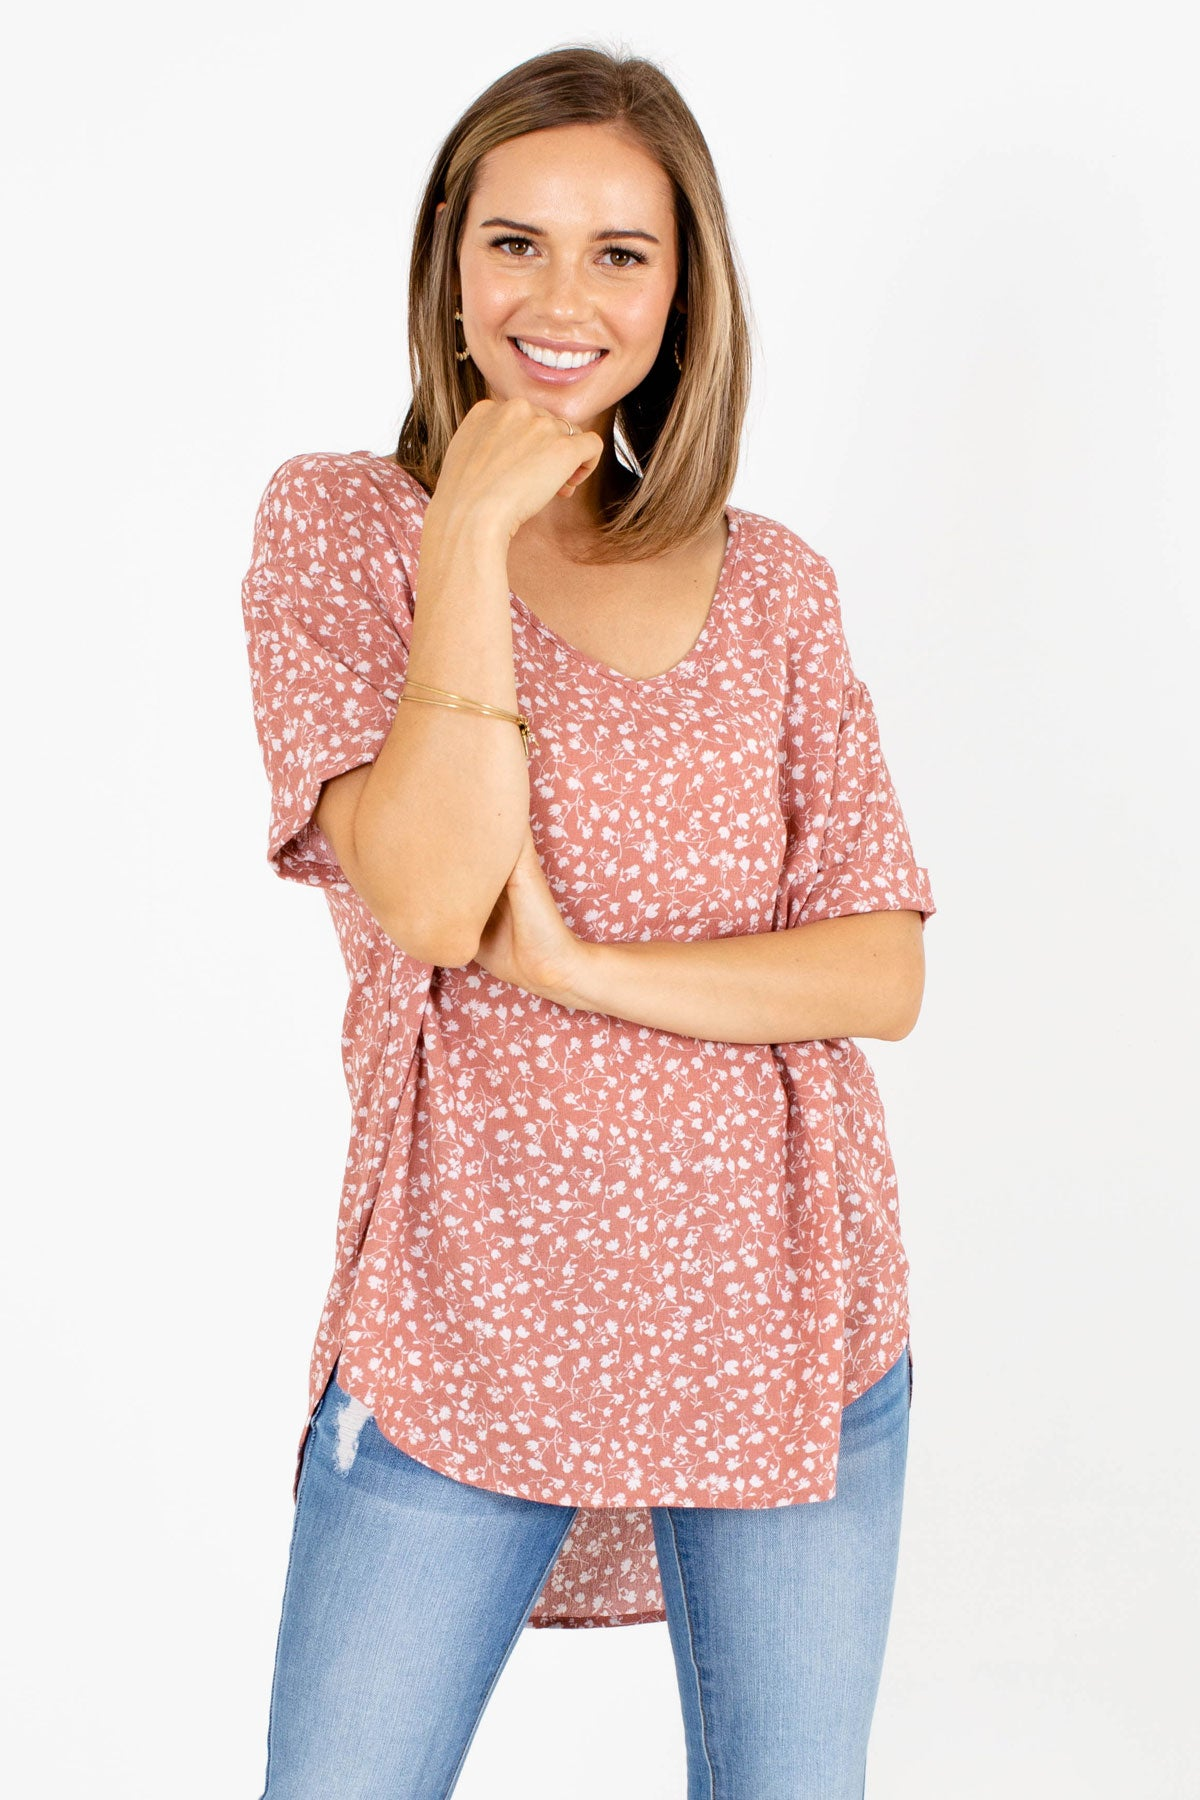 Pink and White Floral Patterned Boutique Blouses for Women